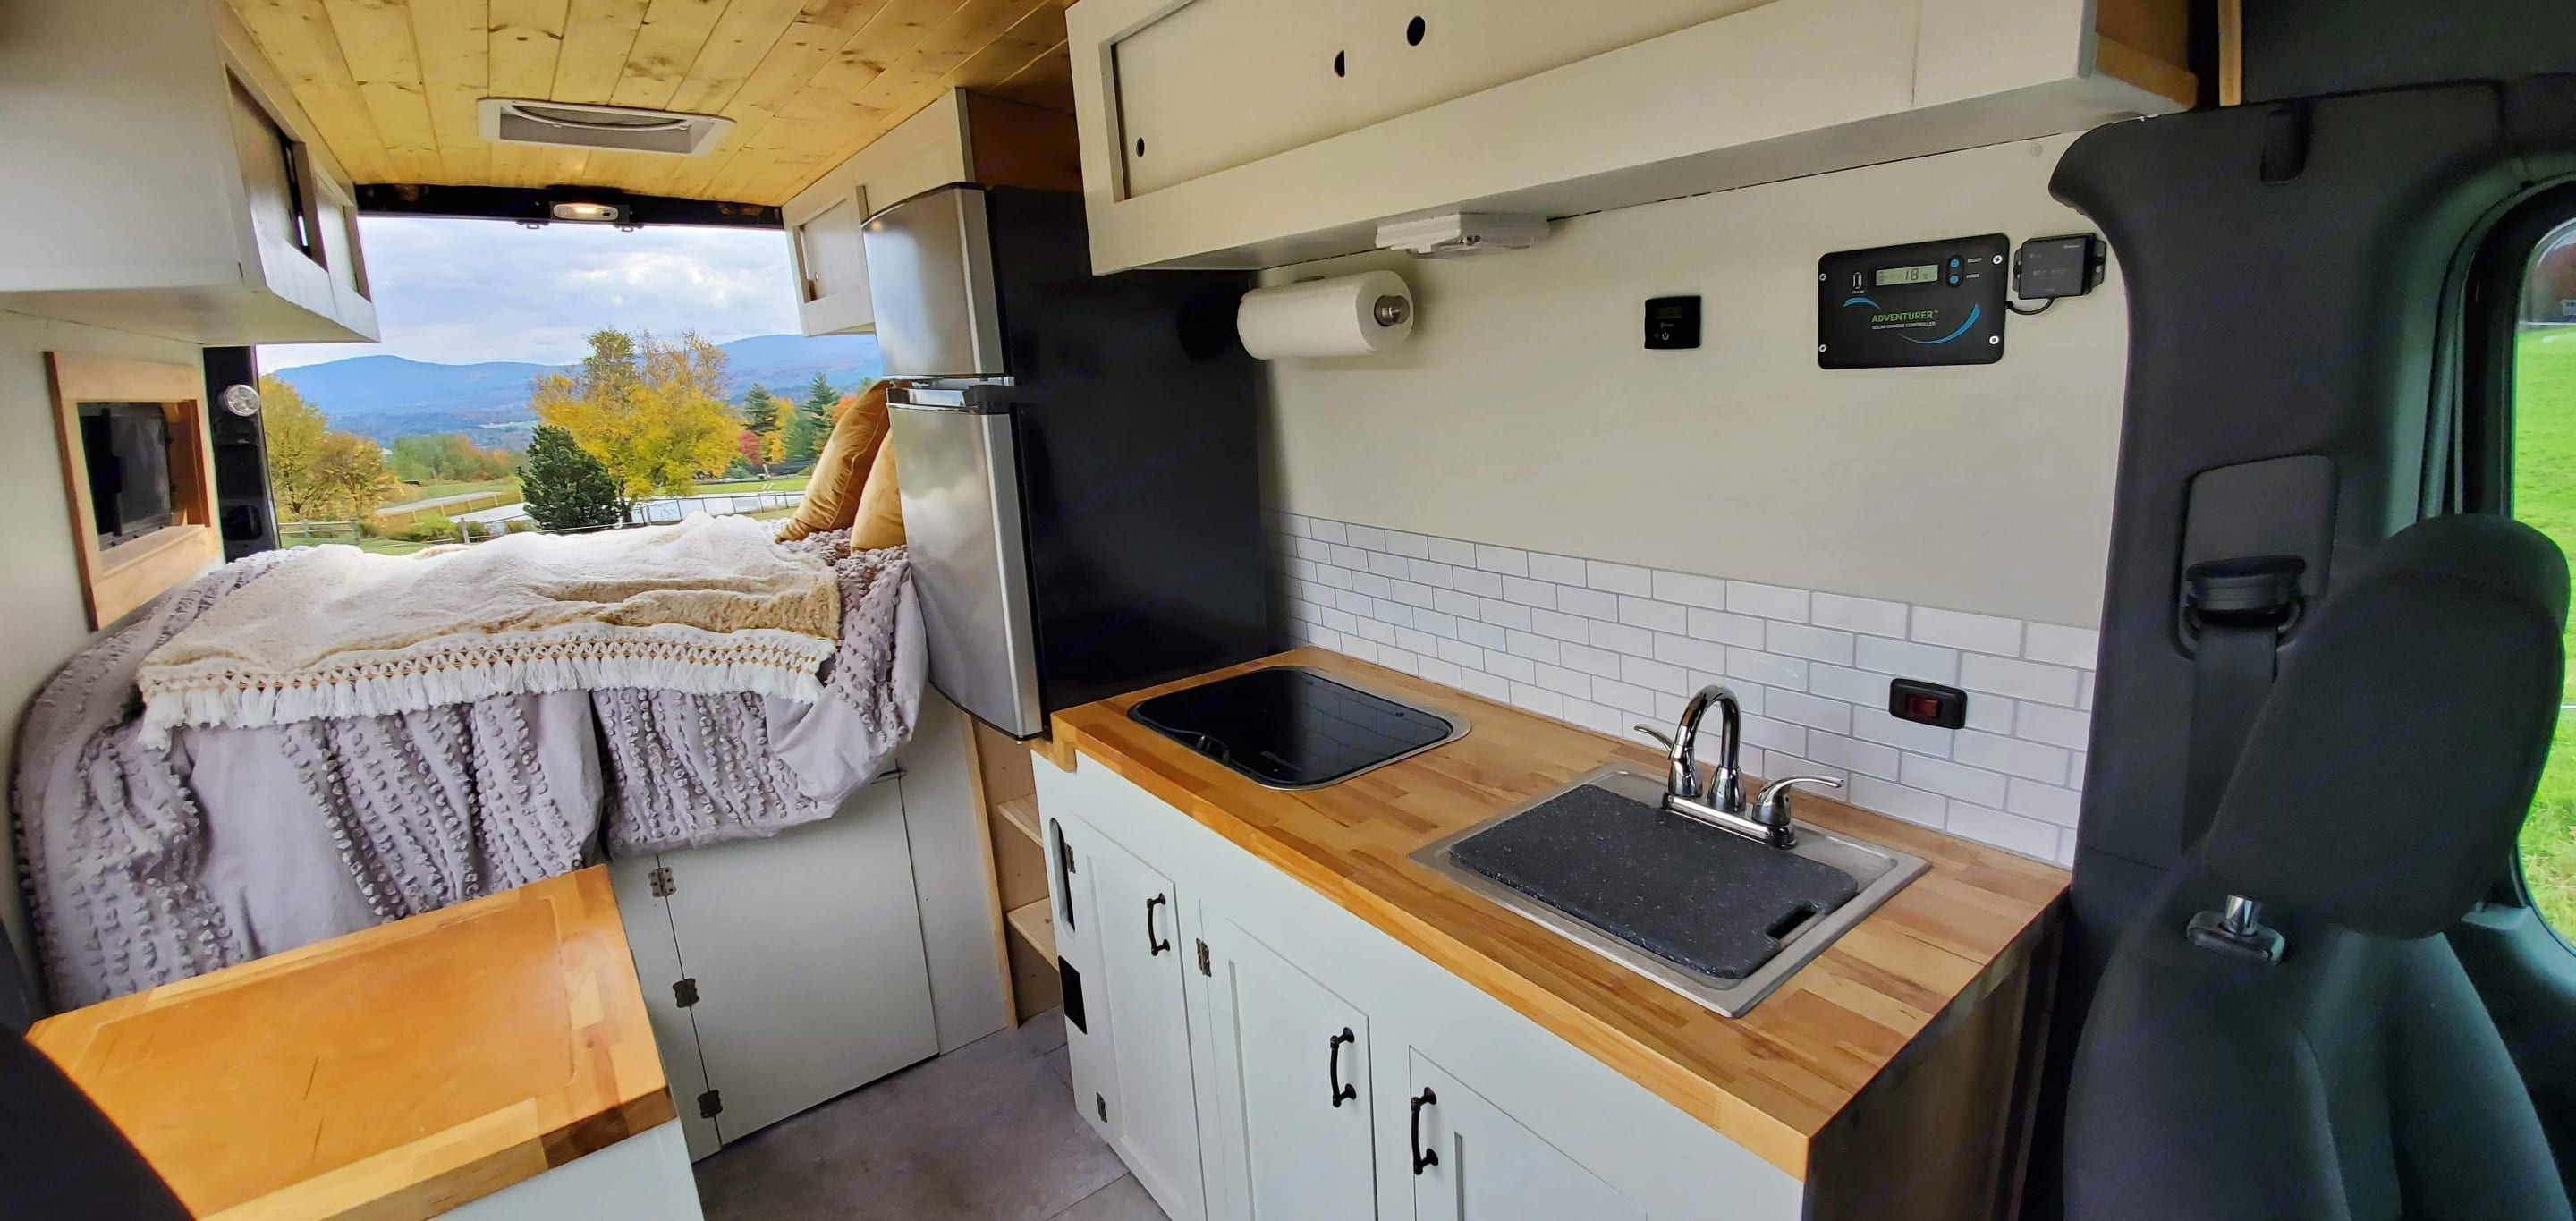 2 burner propane stove with sink. Running water from 7 gallon tank.. Mercedes-Benz Sprinter 2019